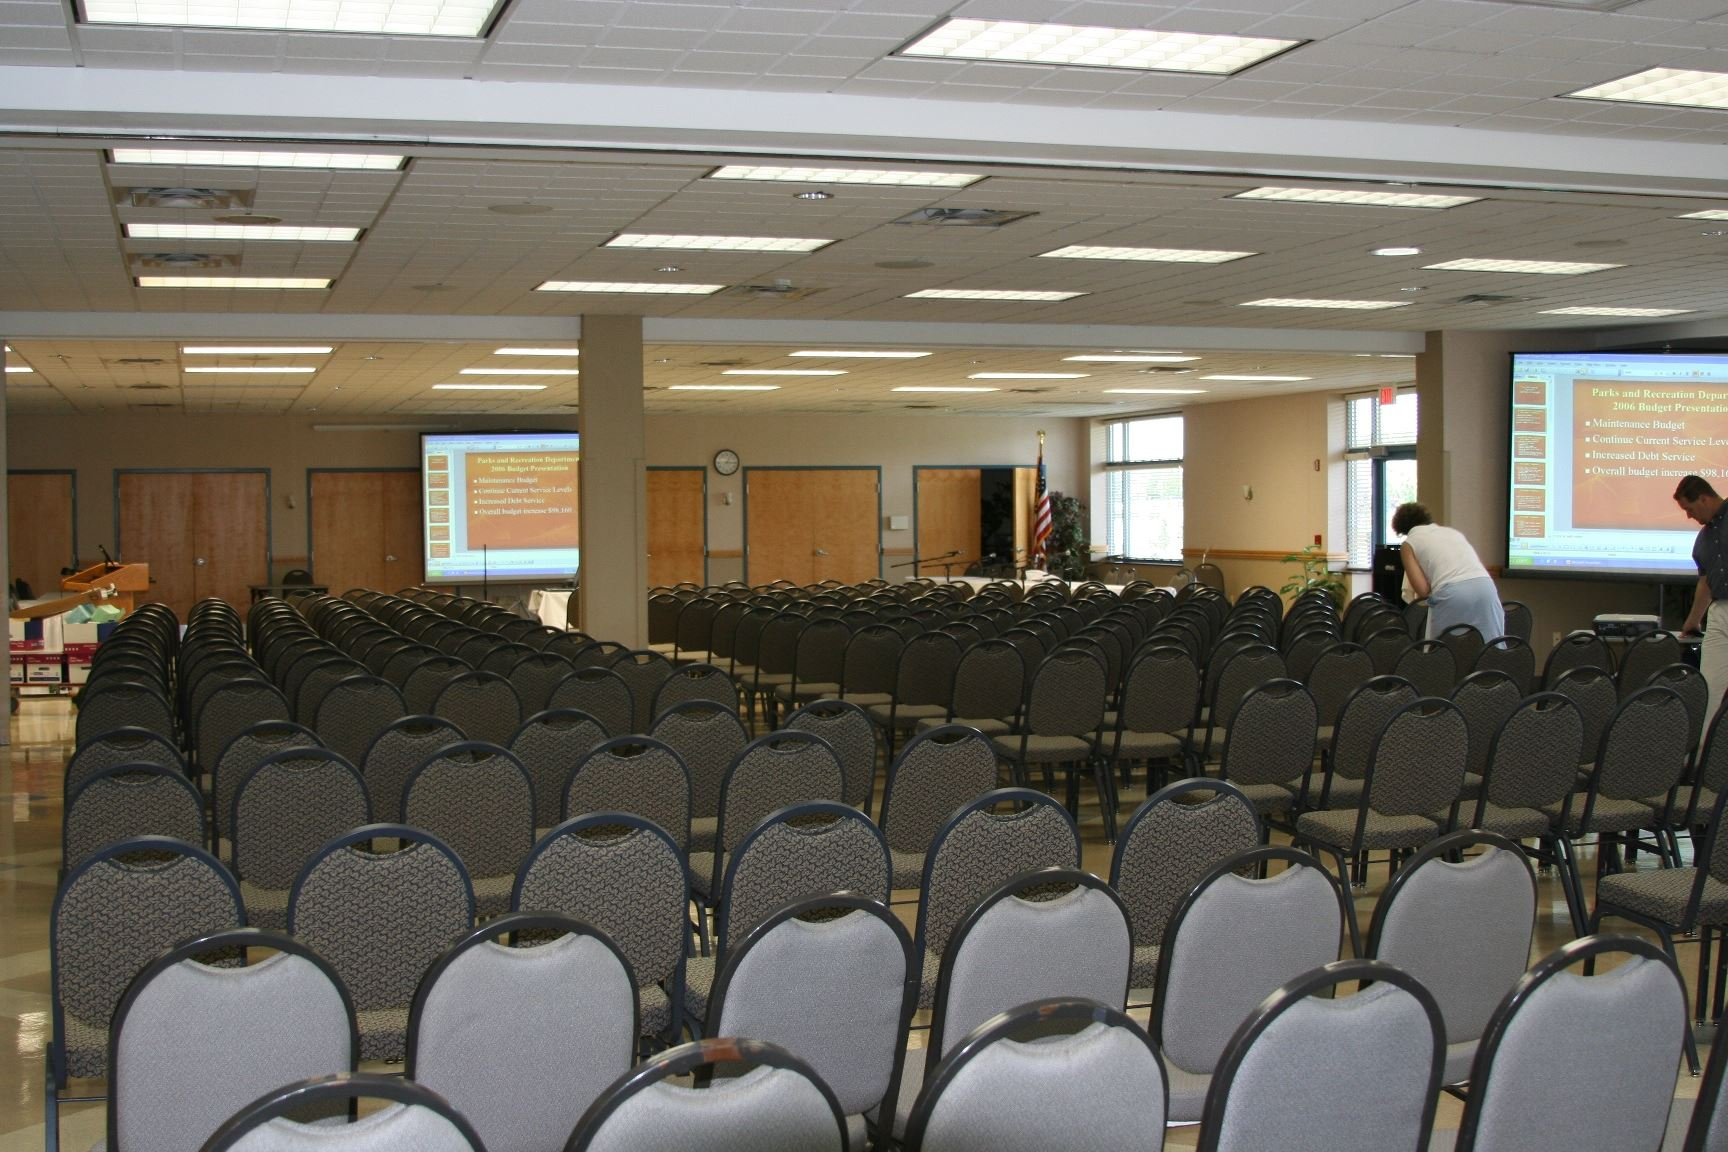 Rows of Chairs Facing the Front of the Room